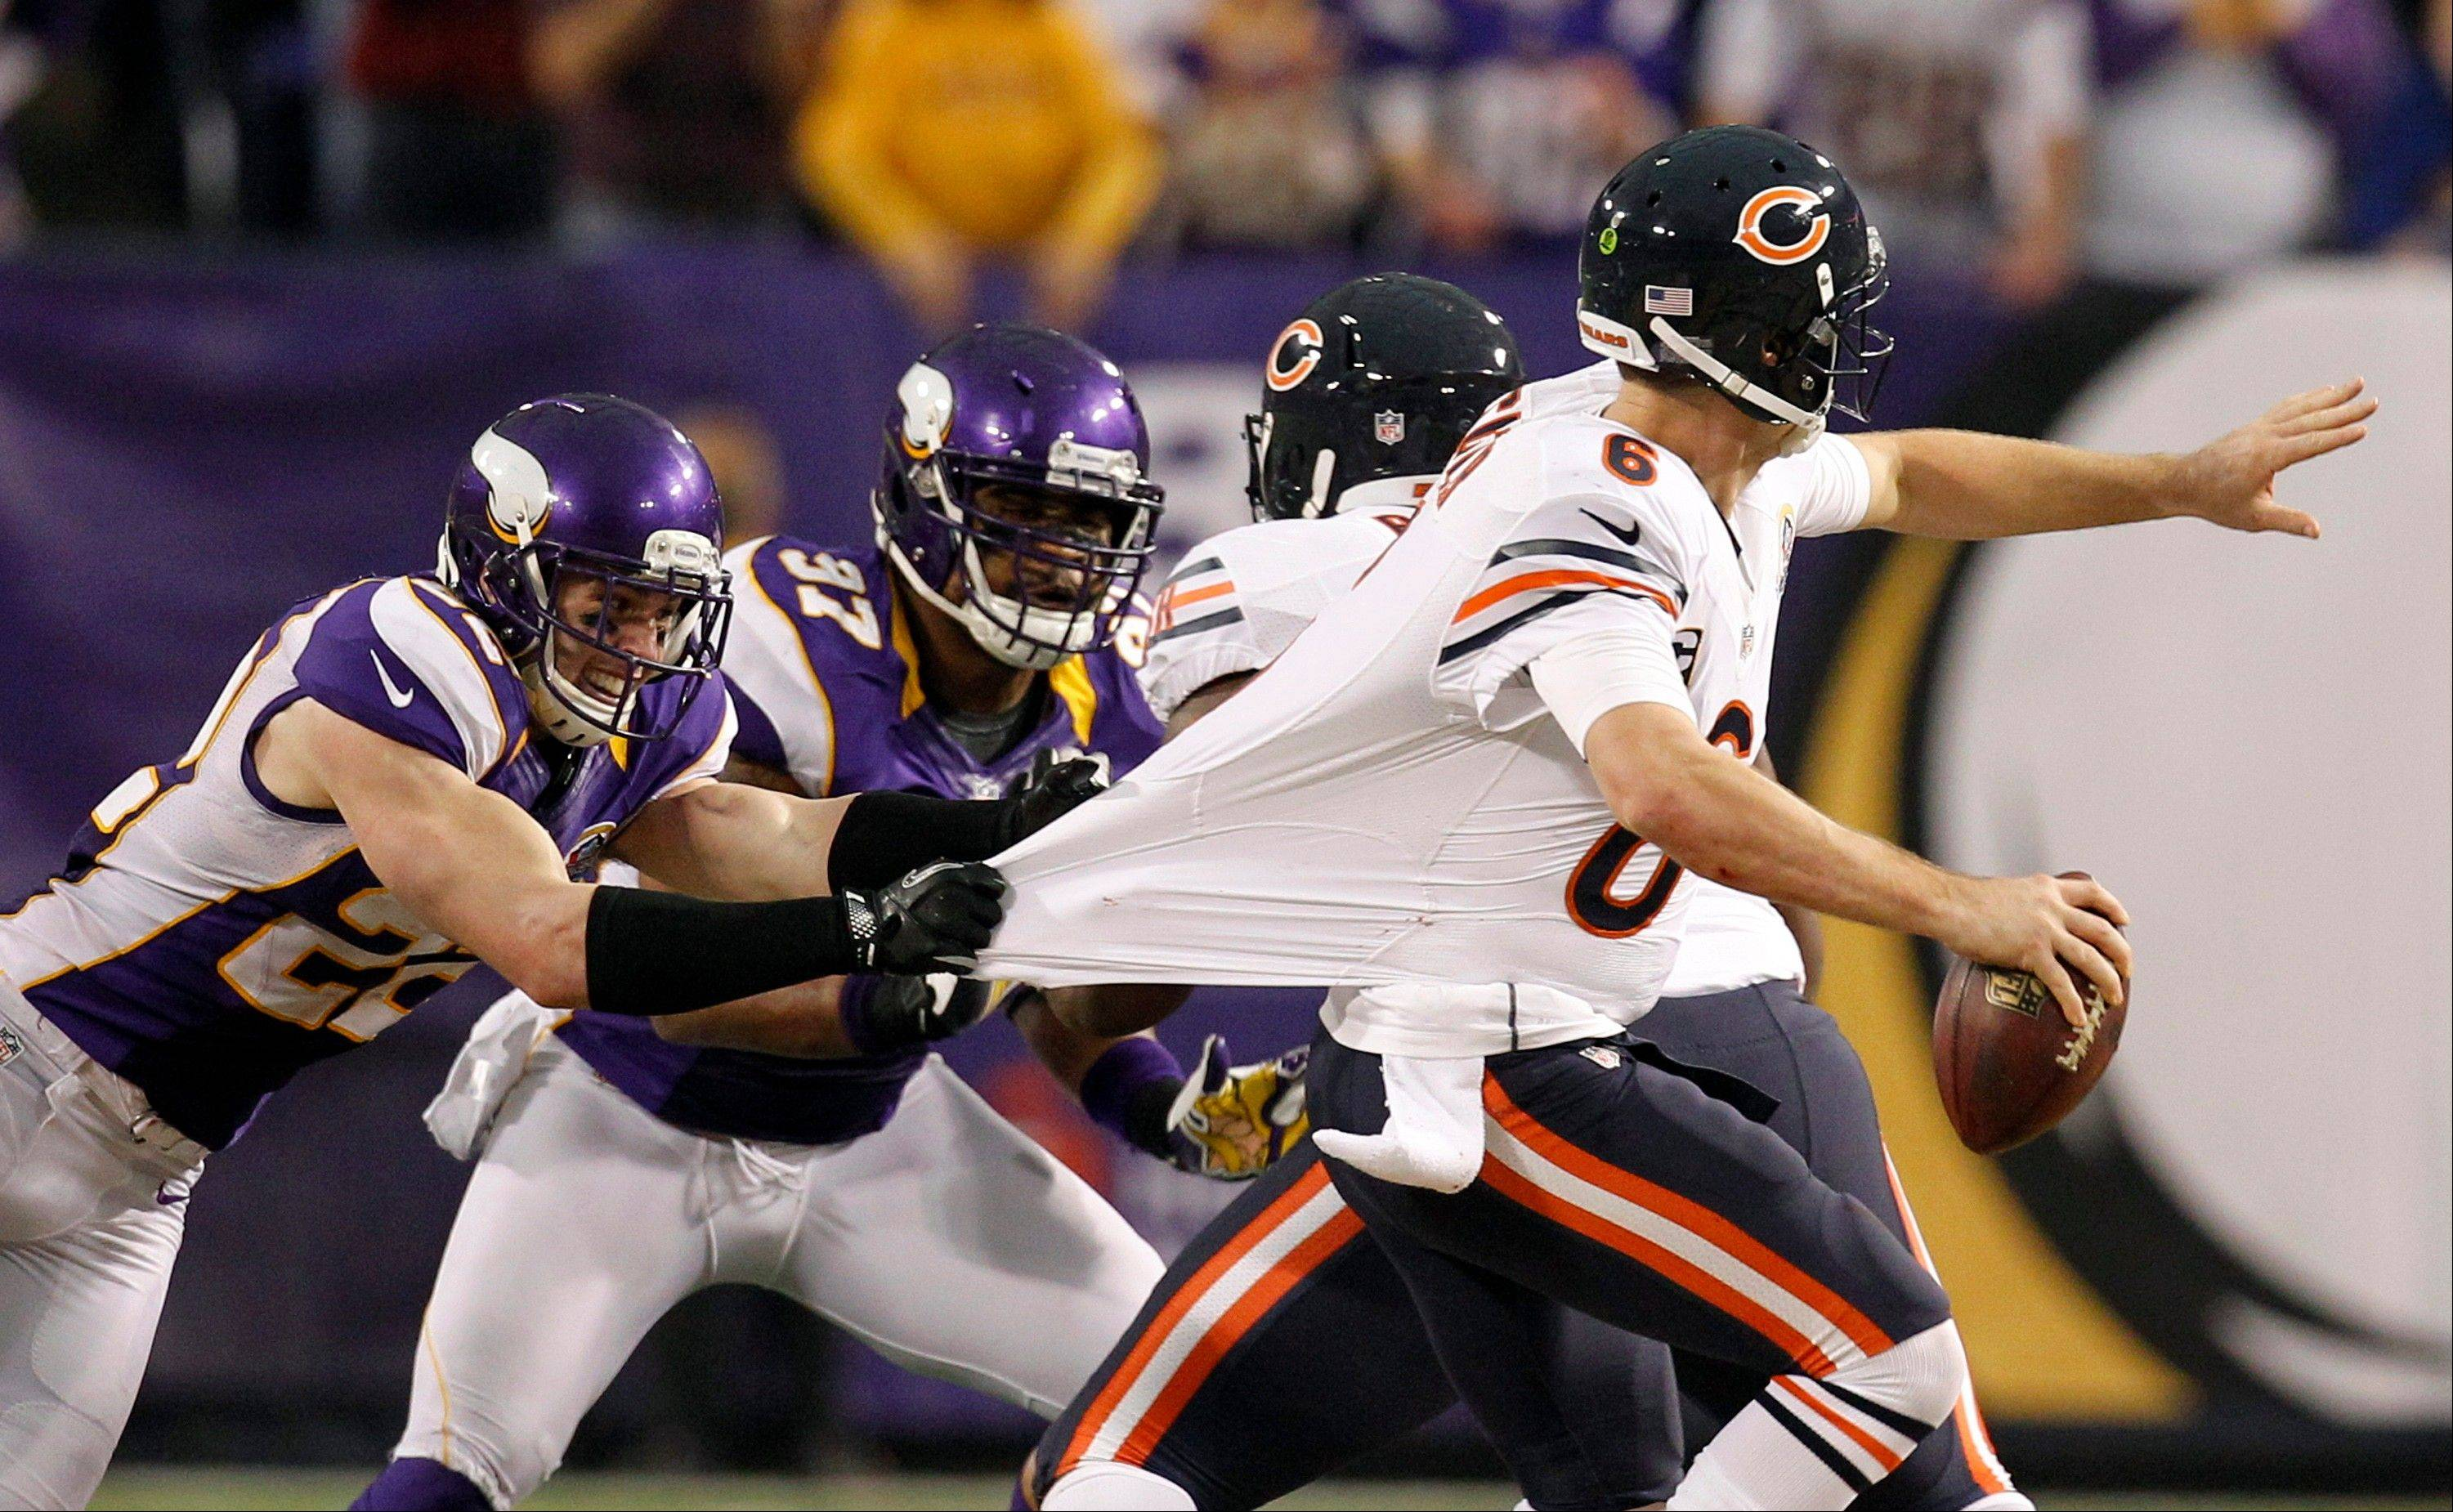 Chicago Bears quarterback Jay Cutler, right, runs from Minnesota Vikings safety Harrison Smith, left, and defensive end Everson Griffen during the second half. The Vikings won 21-14.